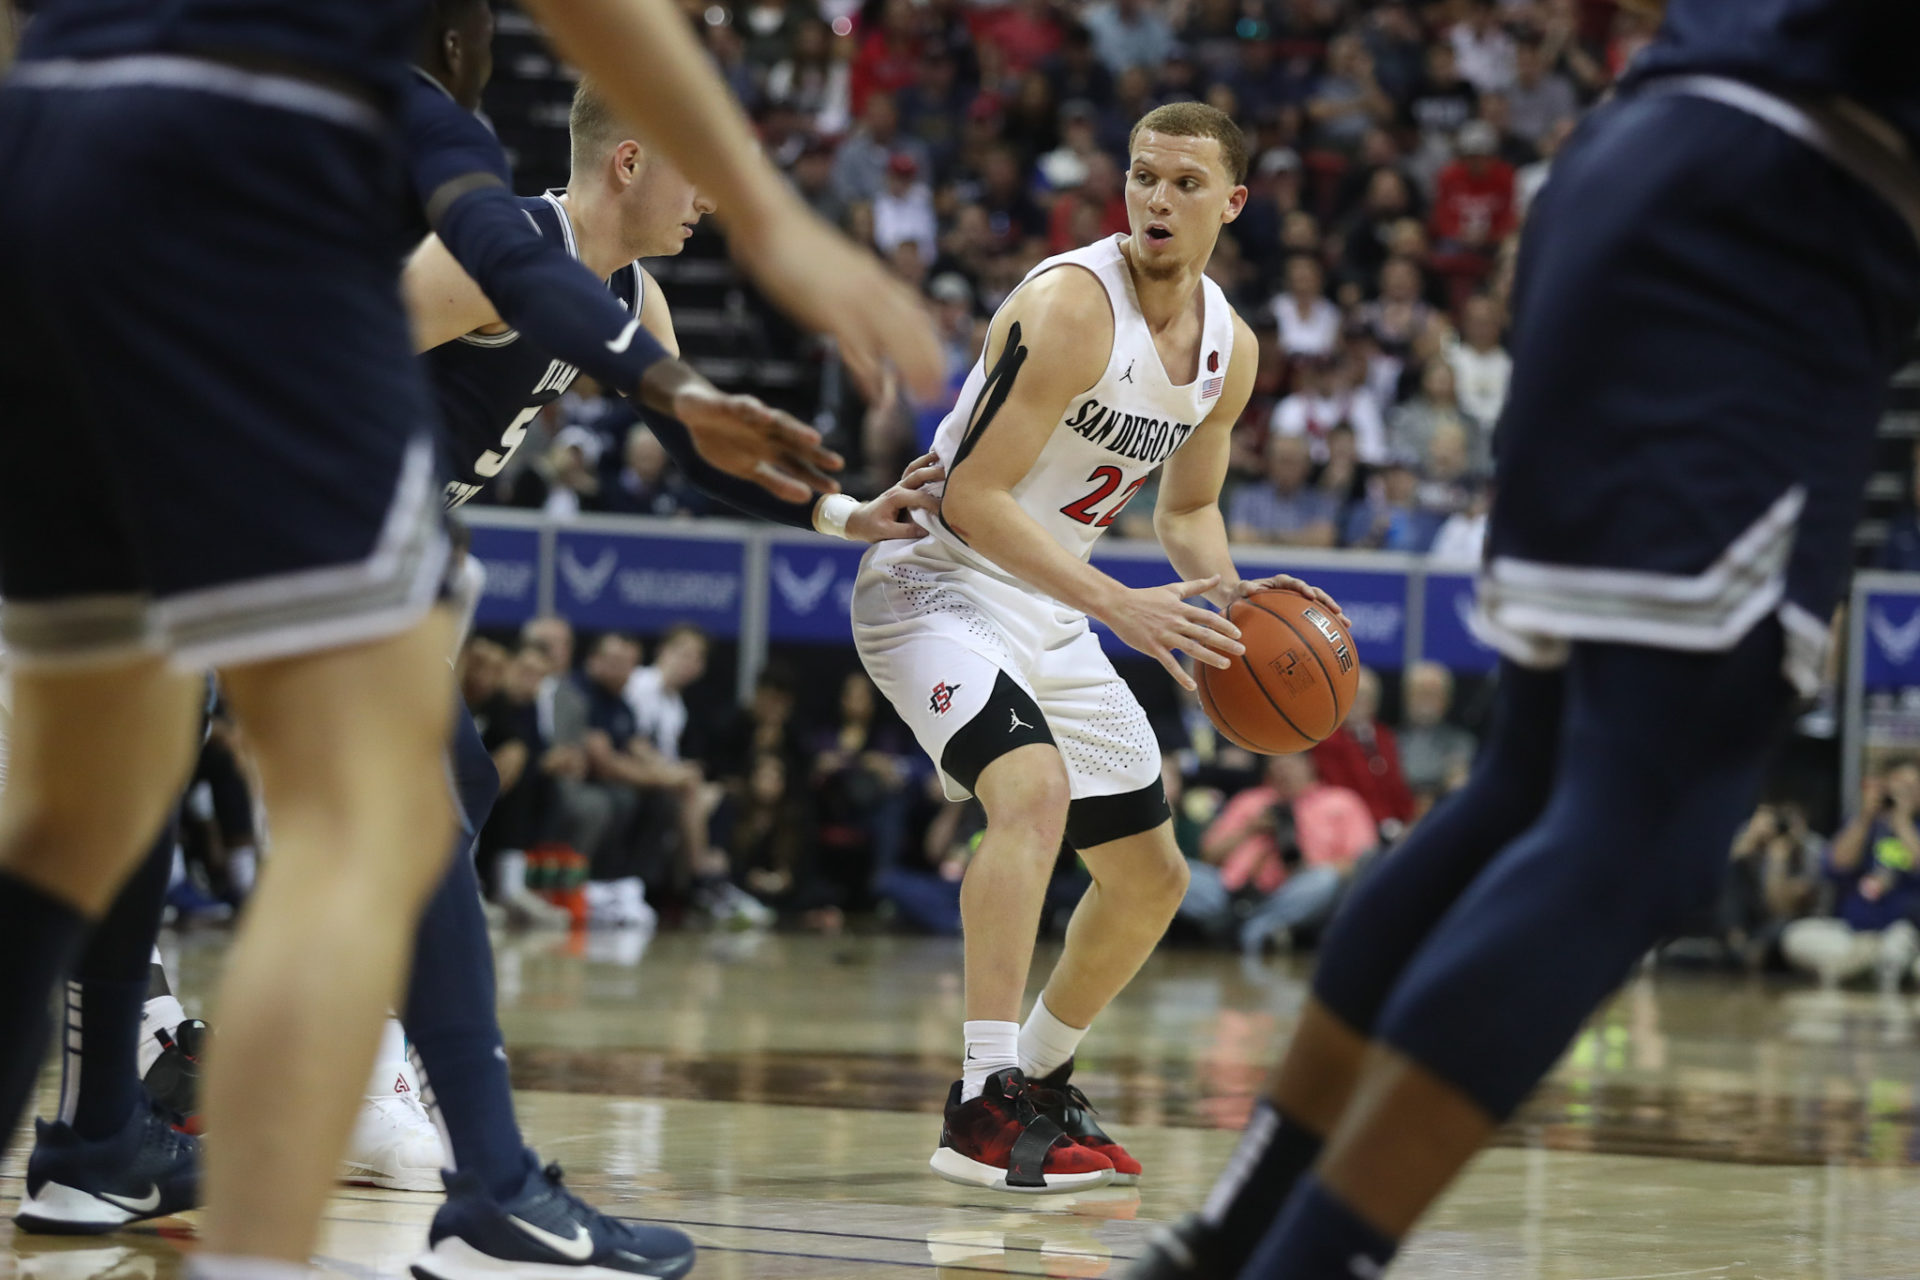 San Diego State men's basketball player Malachi Flynn dribbles the ball during a game.